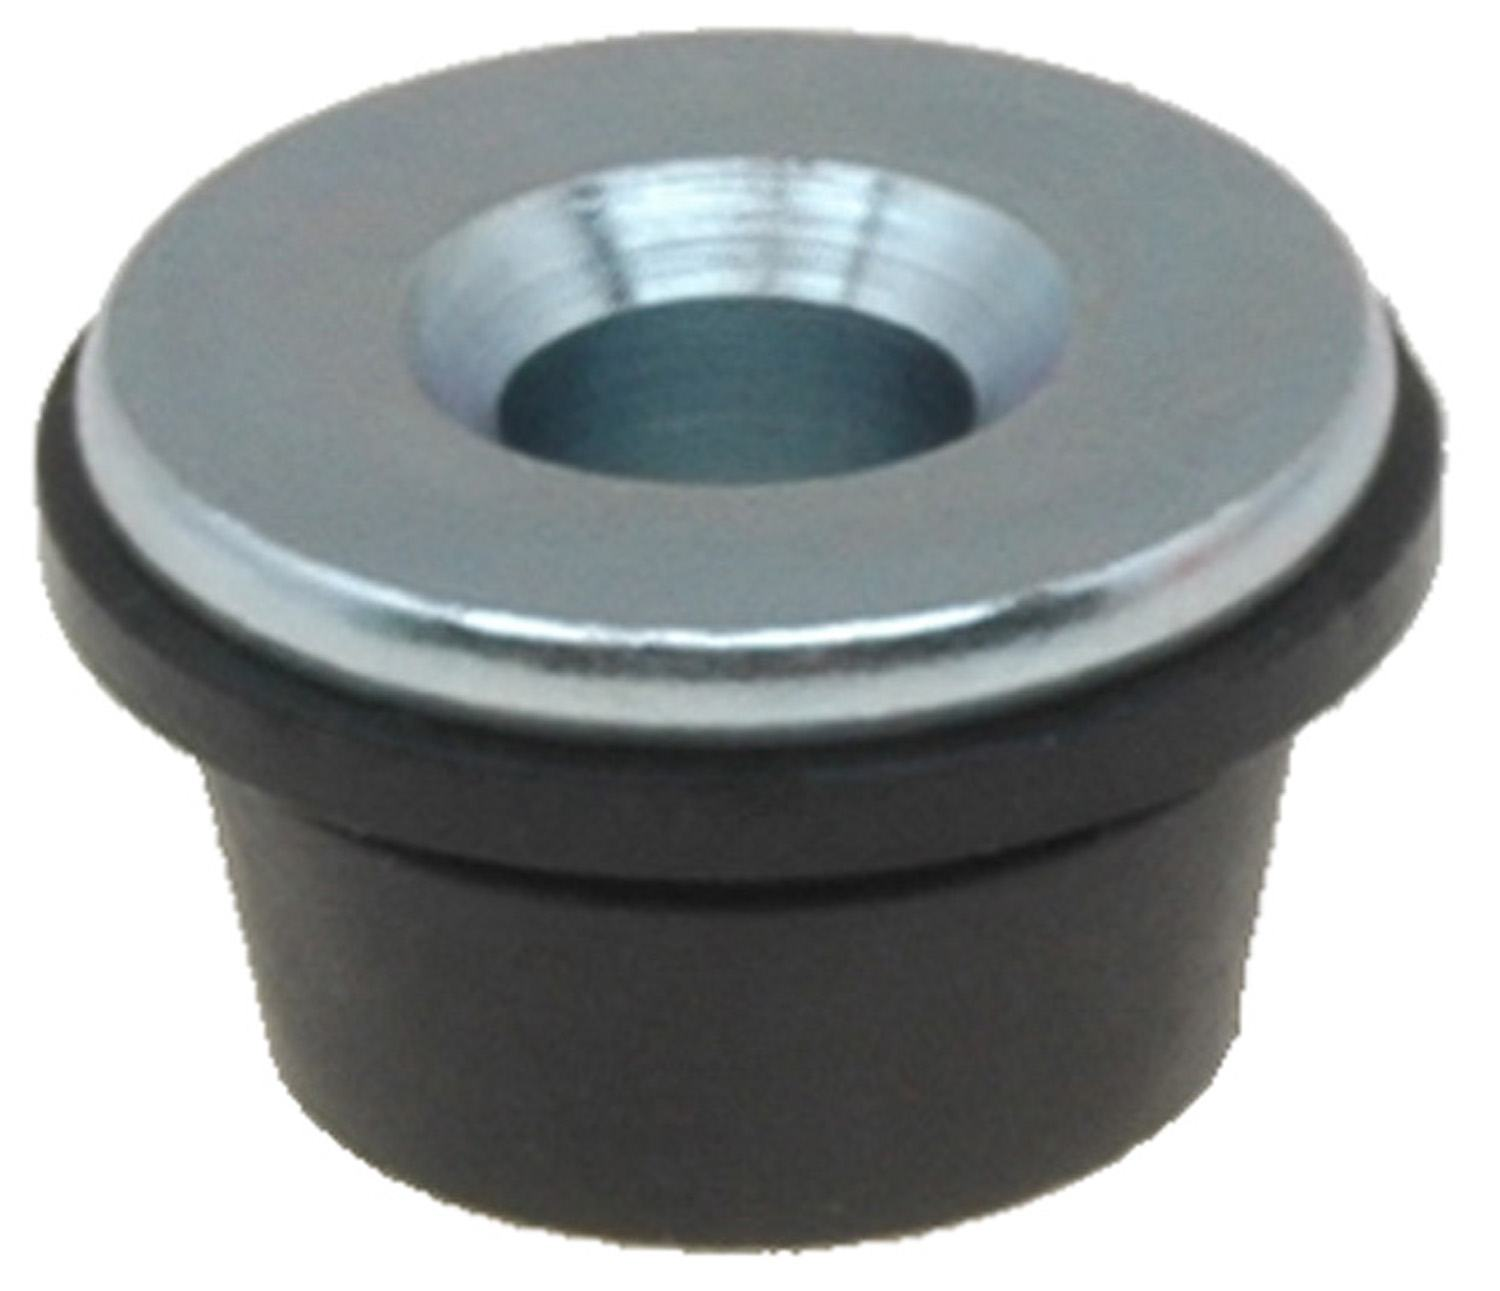 ACDELCO PROFESSIONAL - Rack & Pinion Mount Bushing - DCC 45G24055